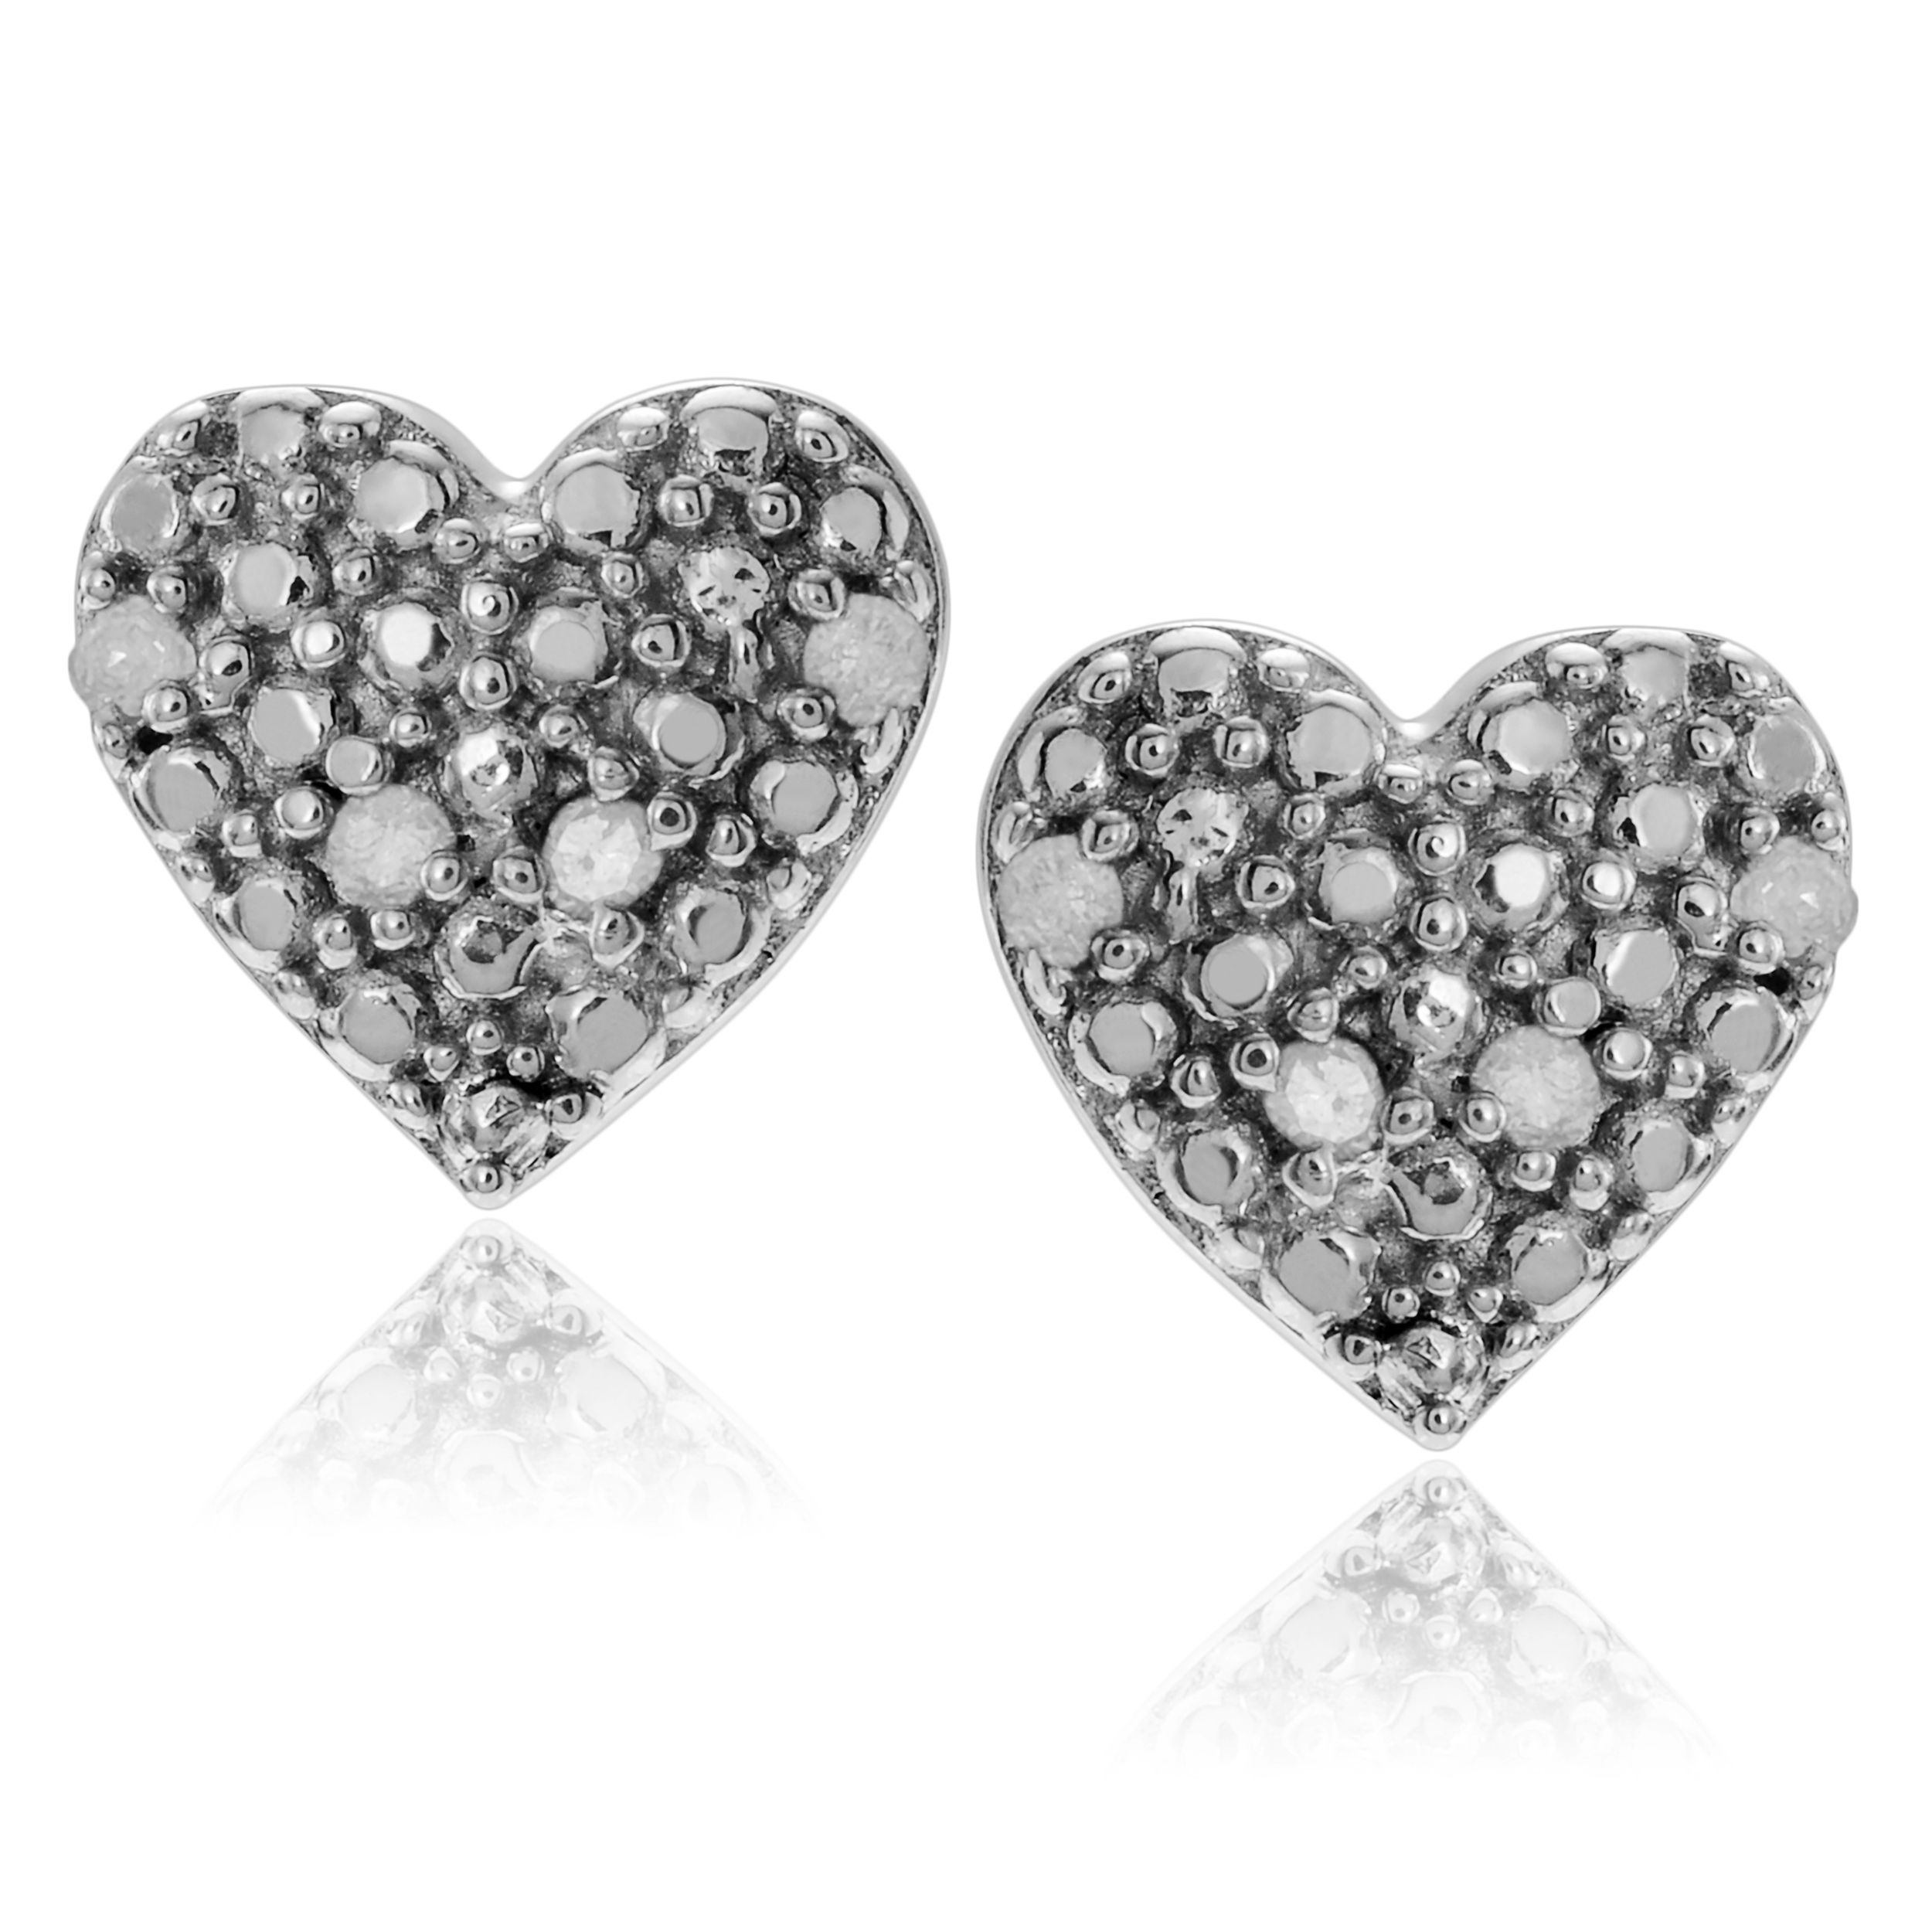 Journee Collection Sterling Silver 1 10 ct Diamond Heart Stud